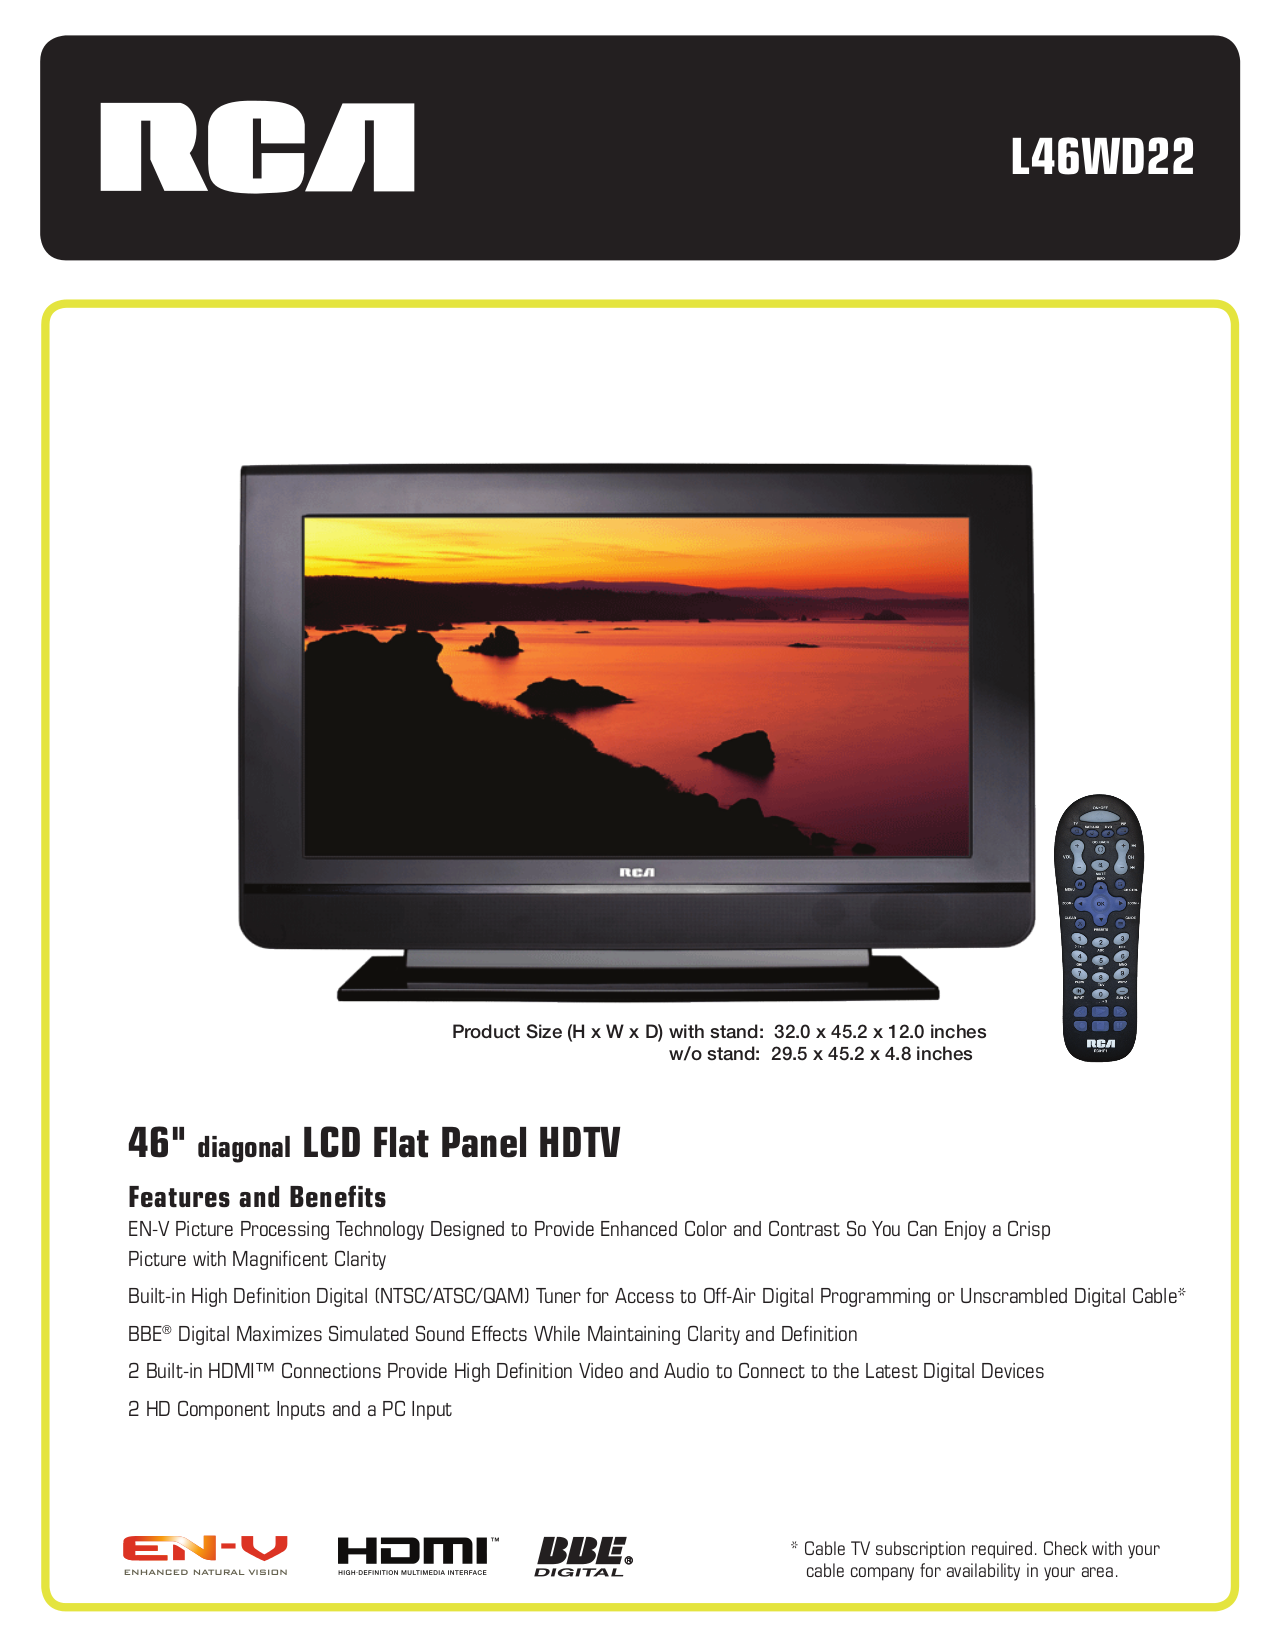 pdf for RCA TV L46WD22 manual